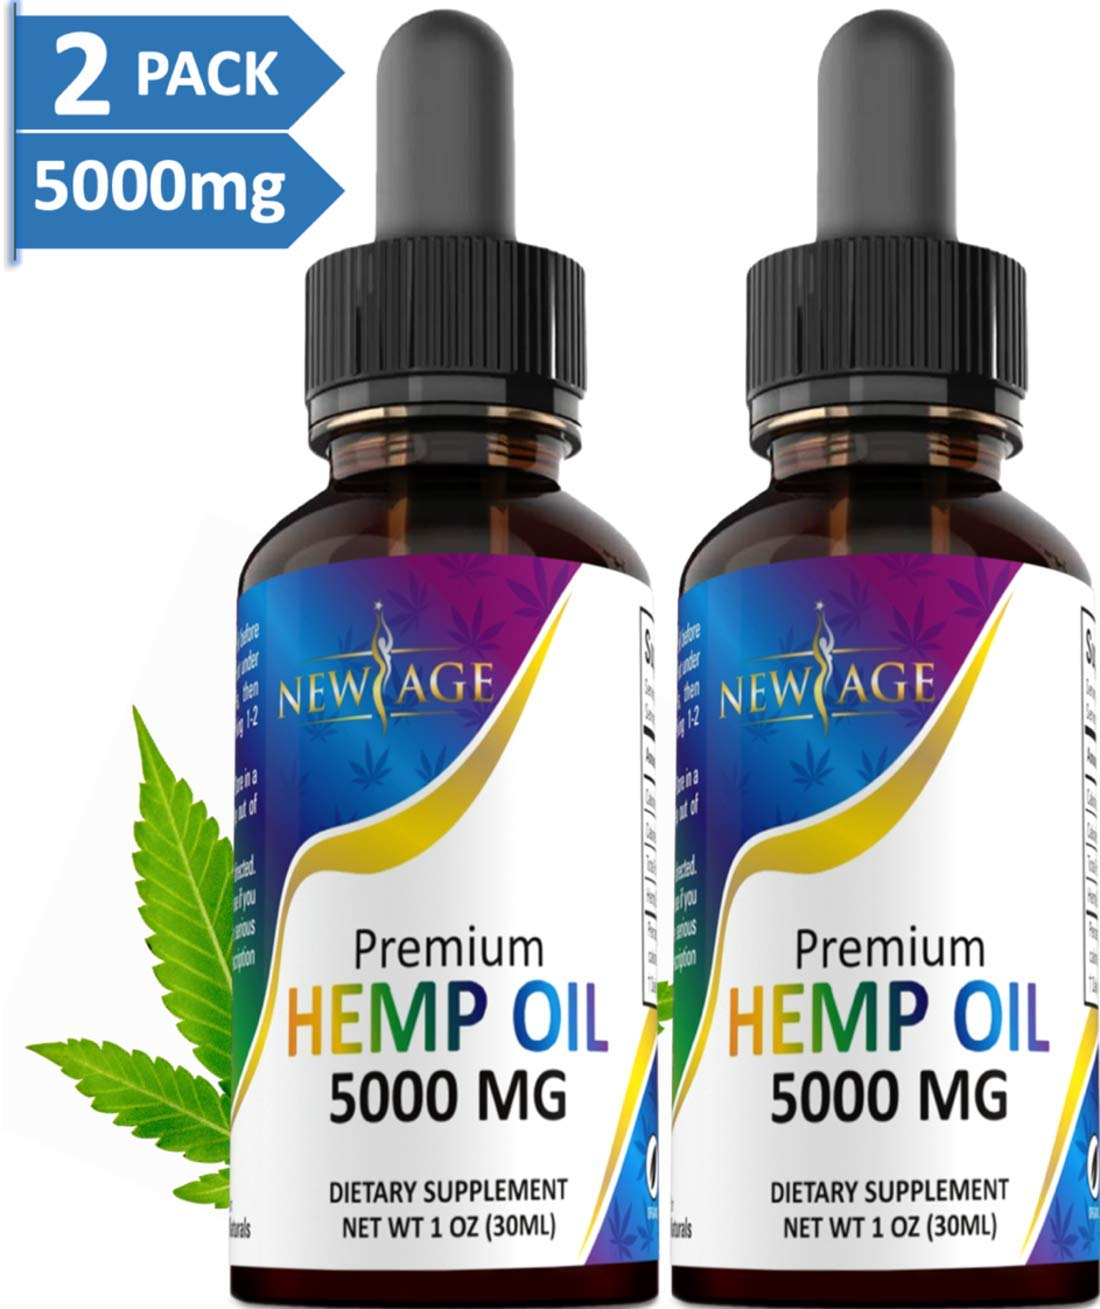 (2-Pack) 5000mg Hemp Oil Extract for Pain, Anxiety & Stress Relief - 5000mg of Pure Hemp Extract - Grown & Made in USA - 100% Natural Hemp Drops - Helps with Sleep, Skin & Hair. by New Age